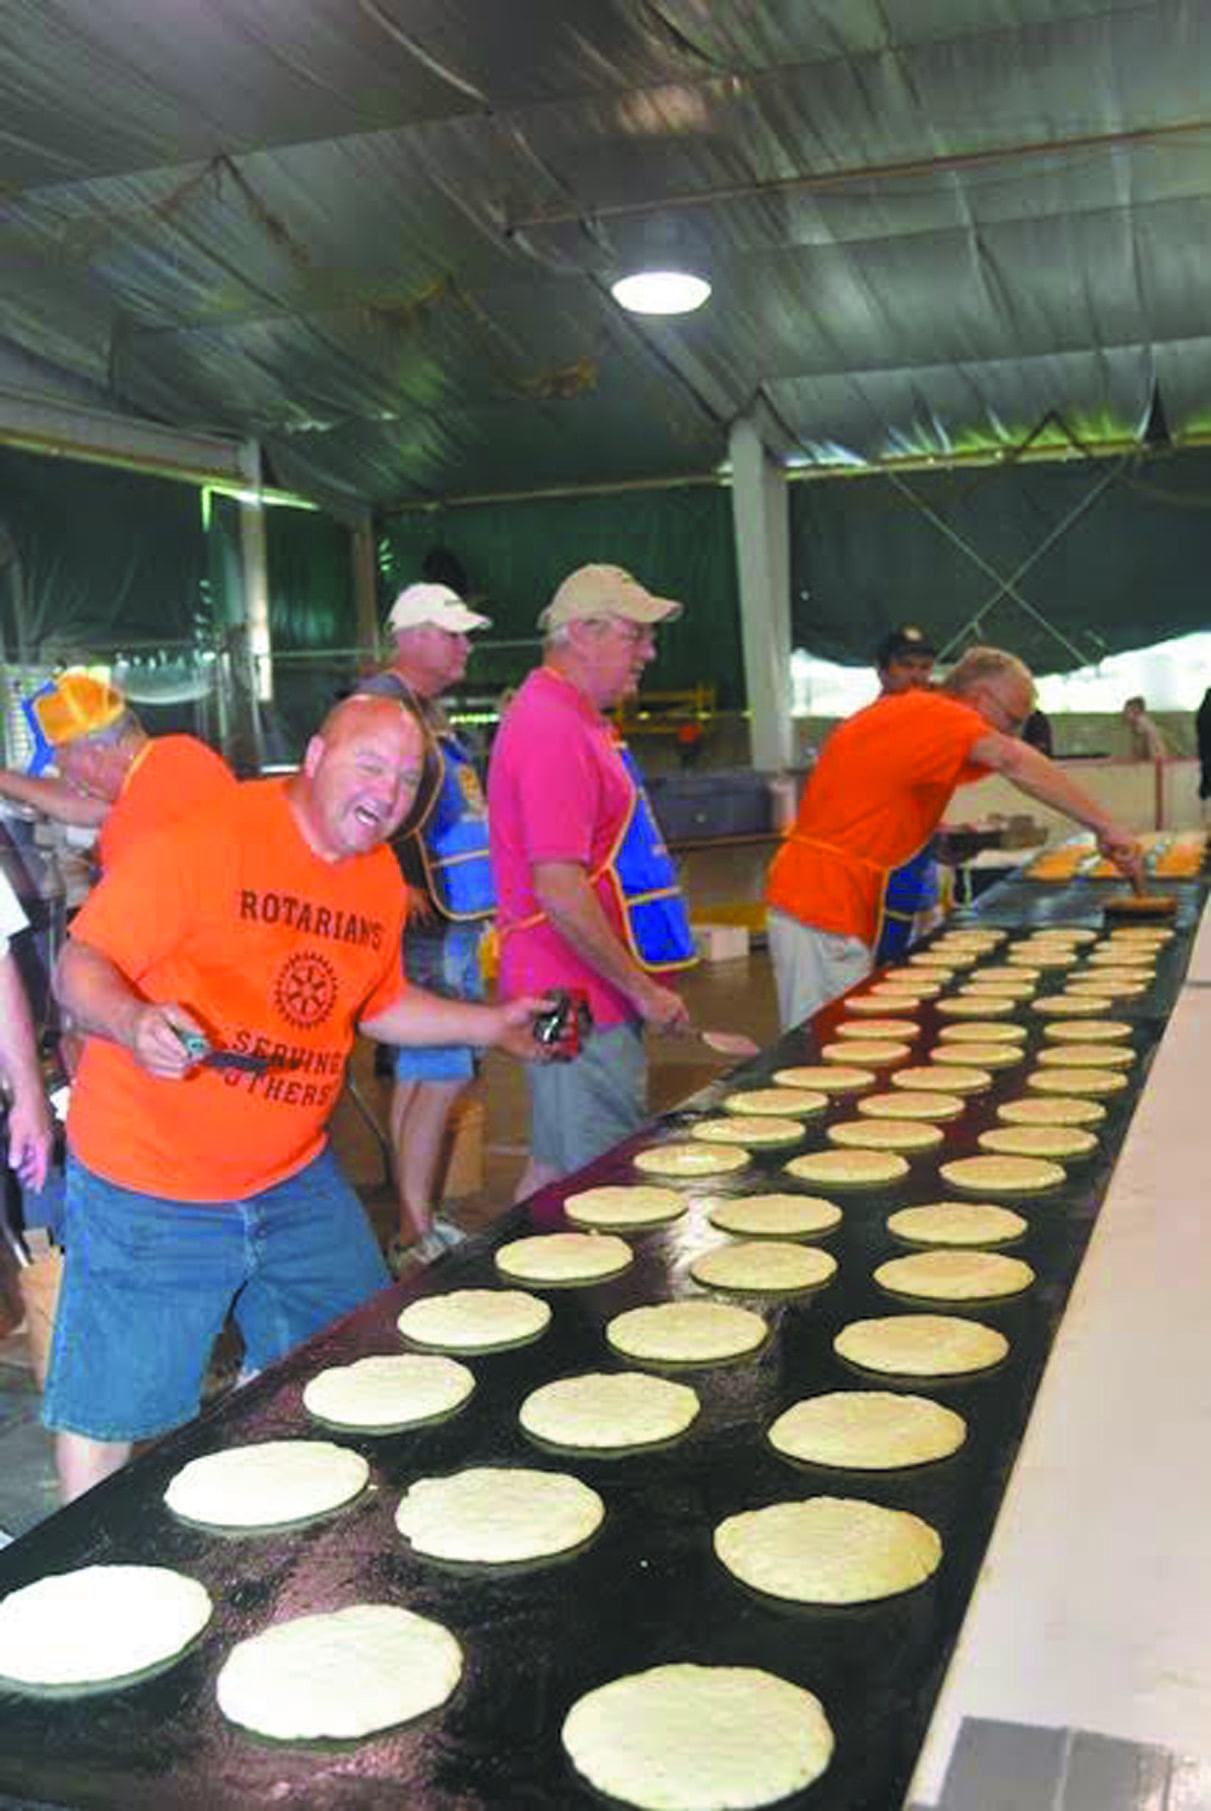 Rotary Father's Day pancake breakfast Sunday